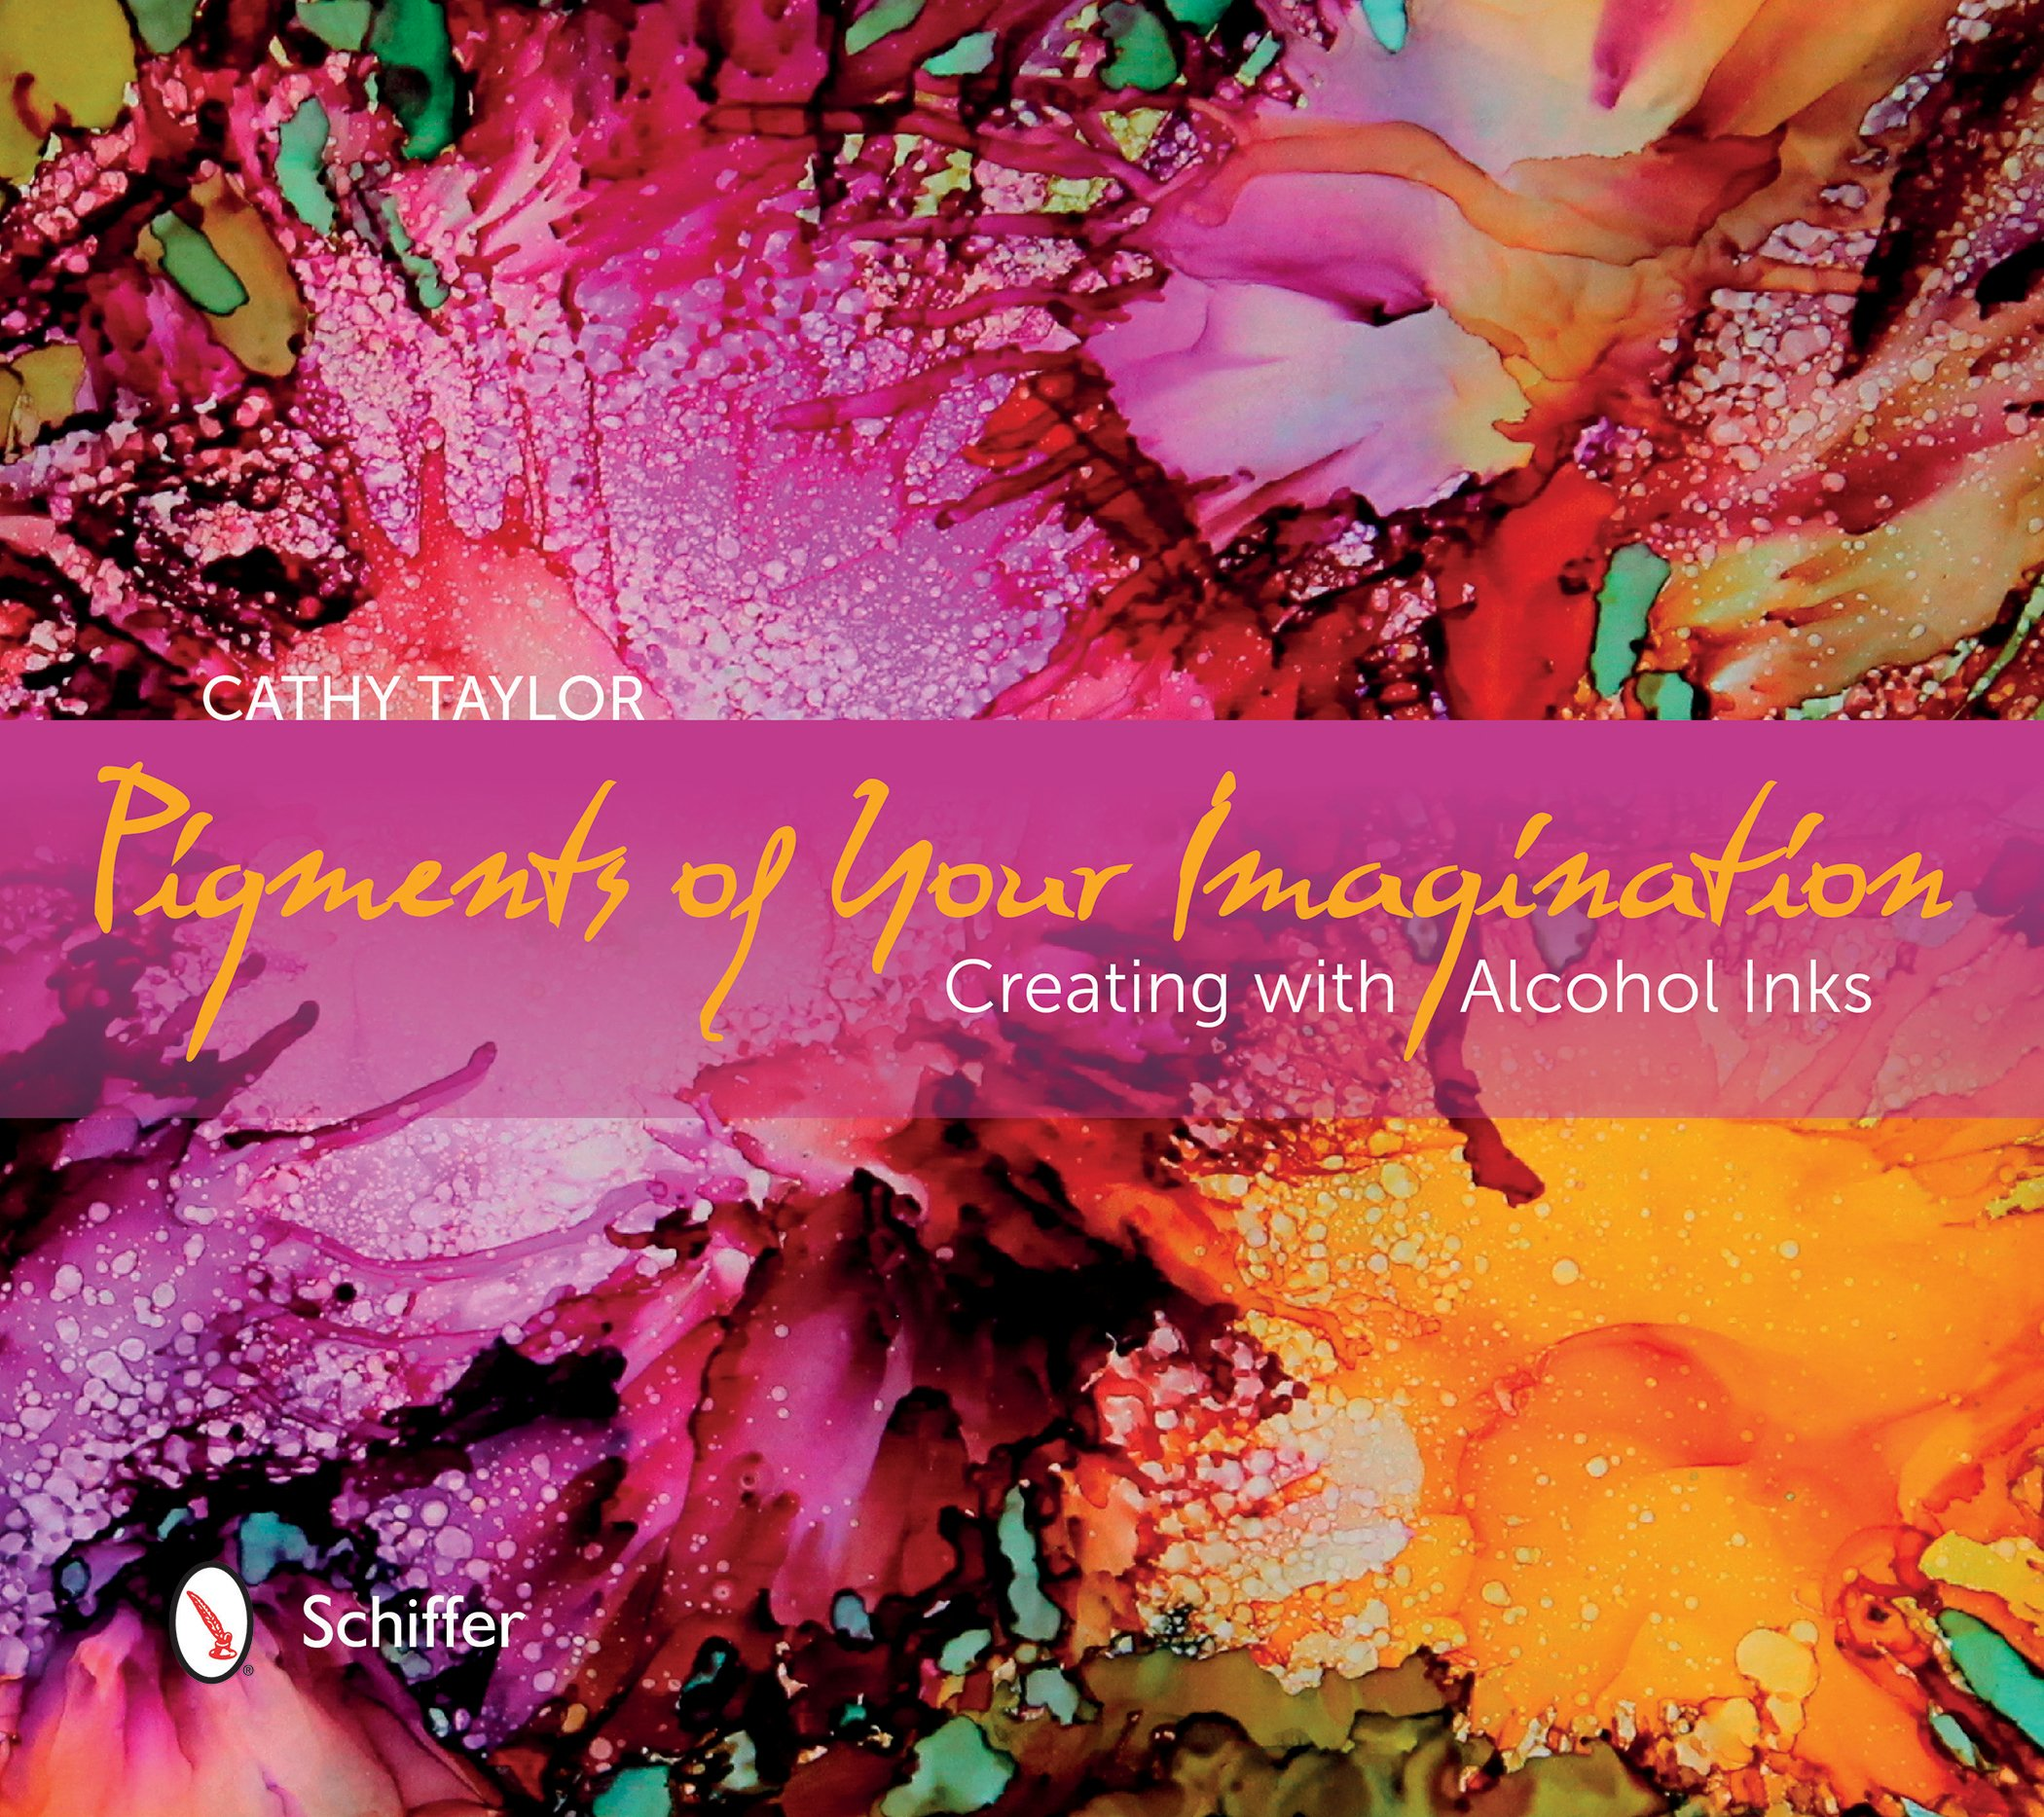 Buy Pigments of Your Imagination: Creating with Alcohol Inks Book Online at  Low Prices in India | Pigments of Your Imagination: Creating with Alcohol  Inks ...